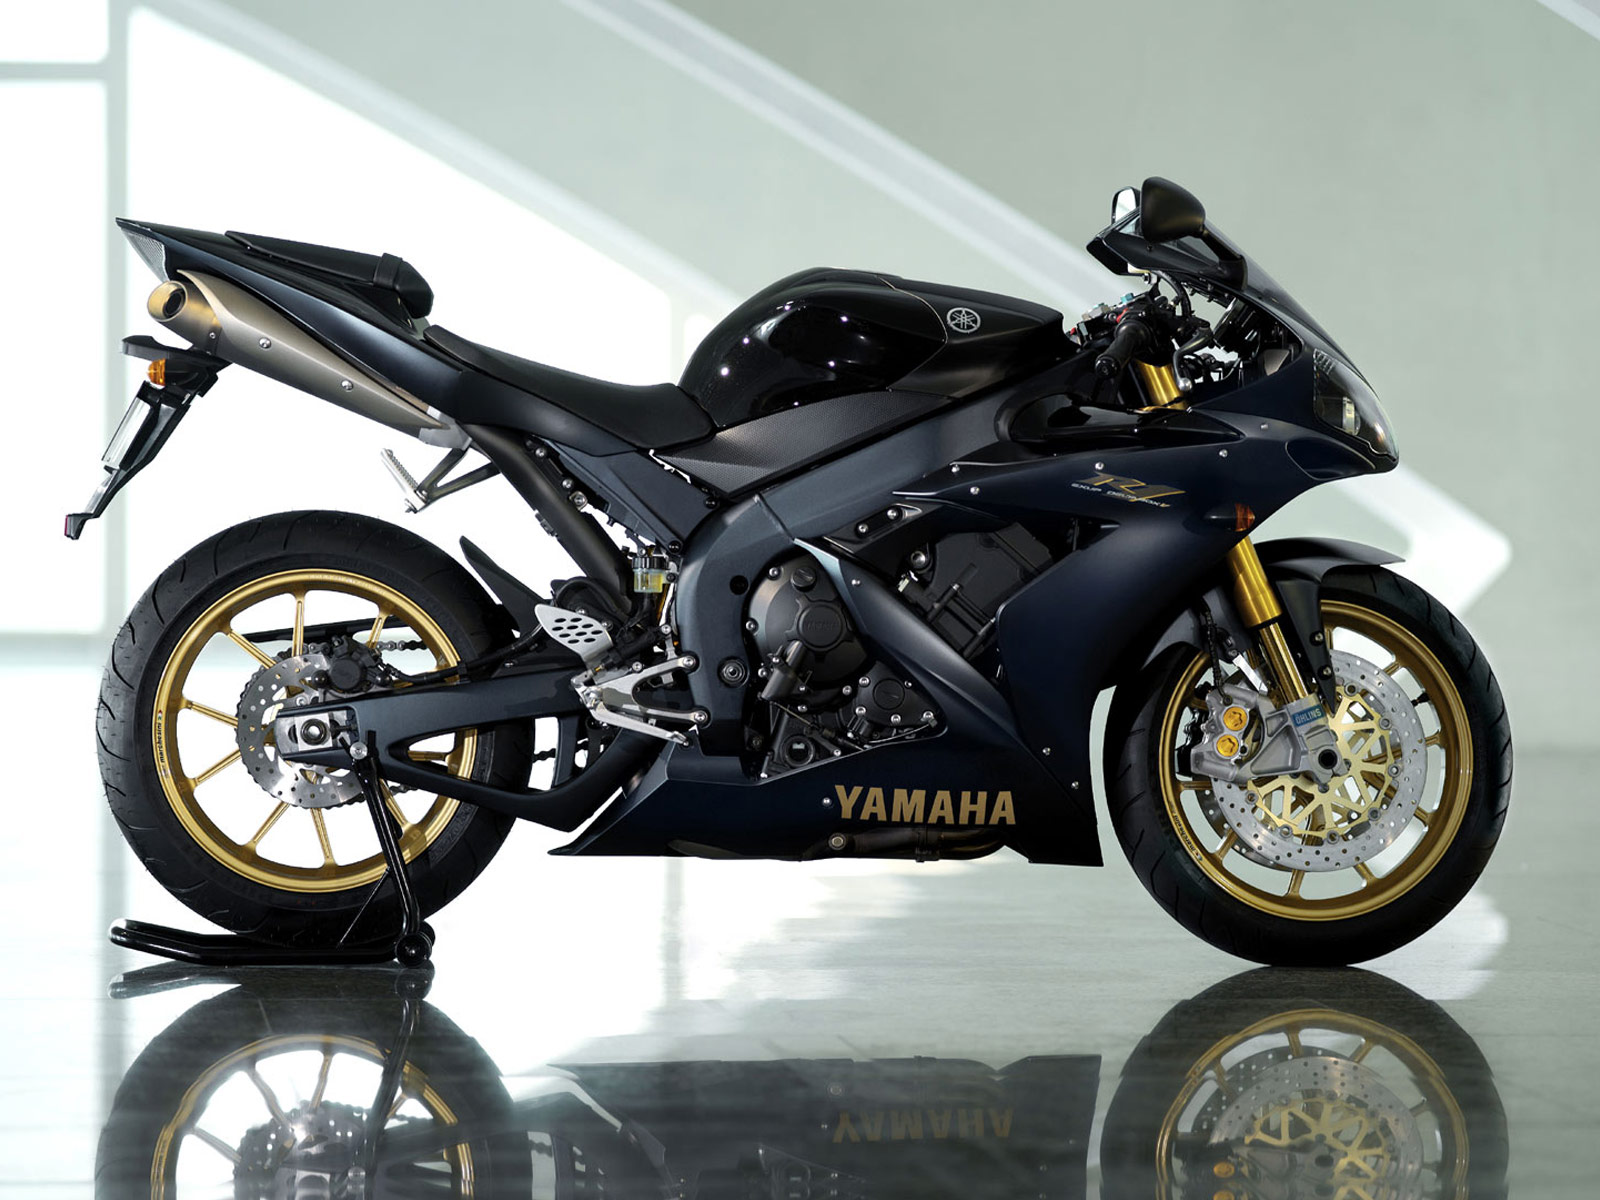 2006 Yamaha Yzf R1sp Pictures Specs Auto Accident Lawyers Motorcycle Fashions